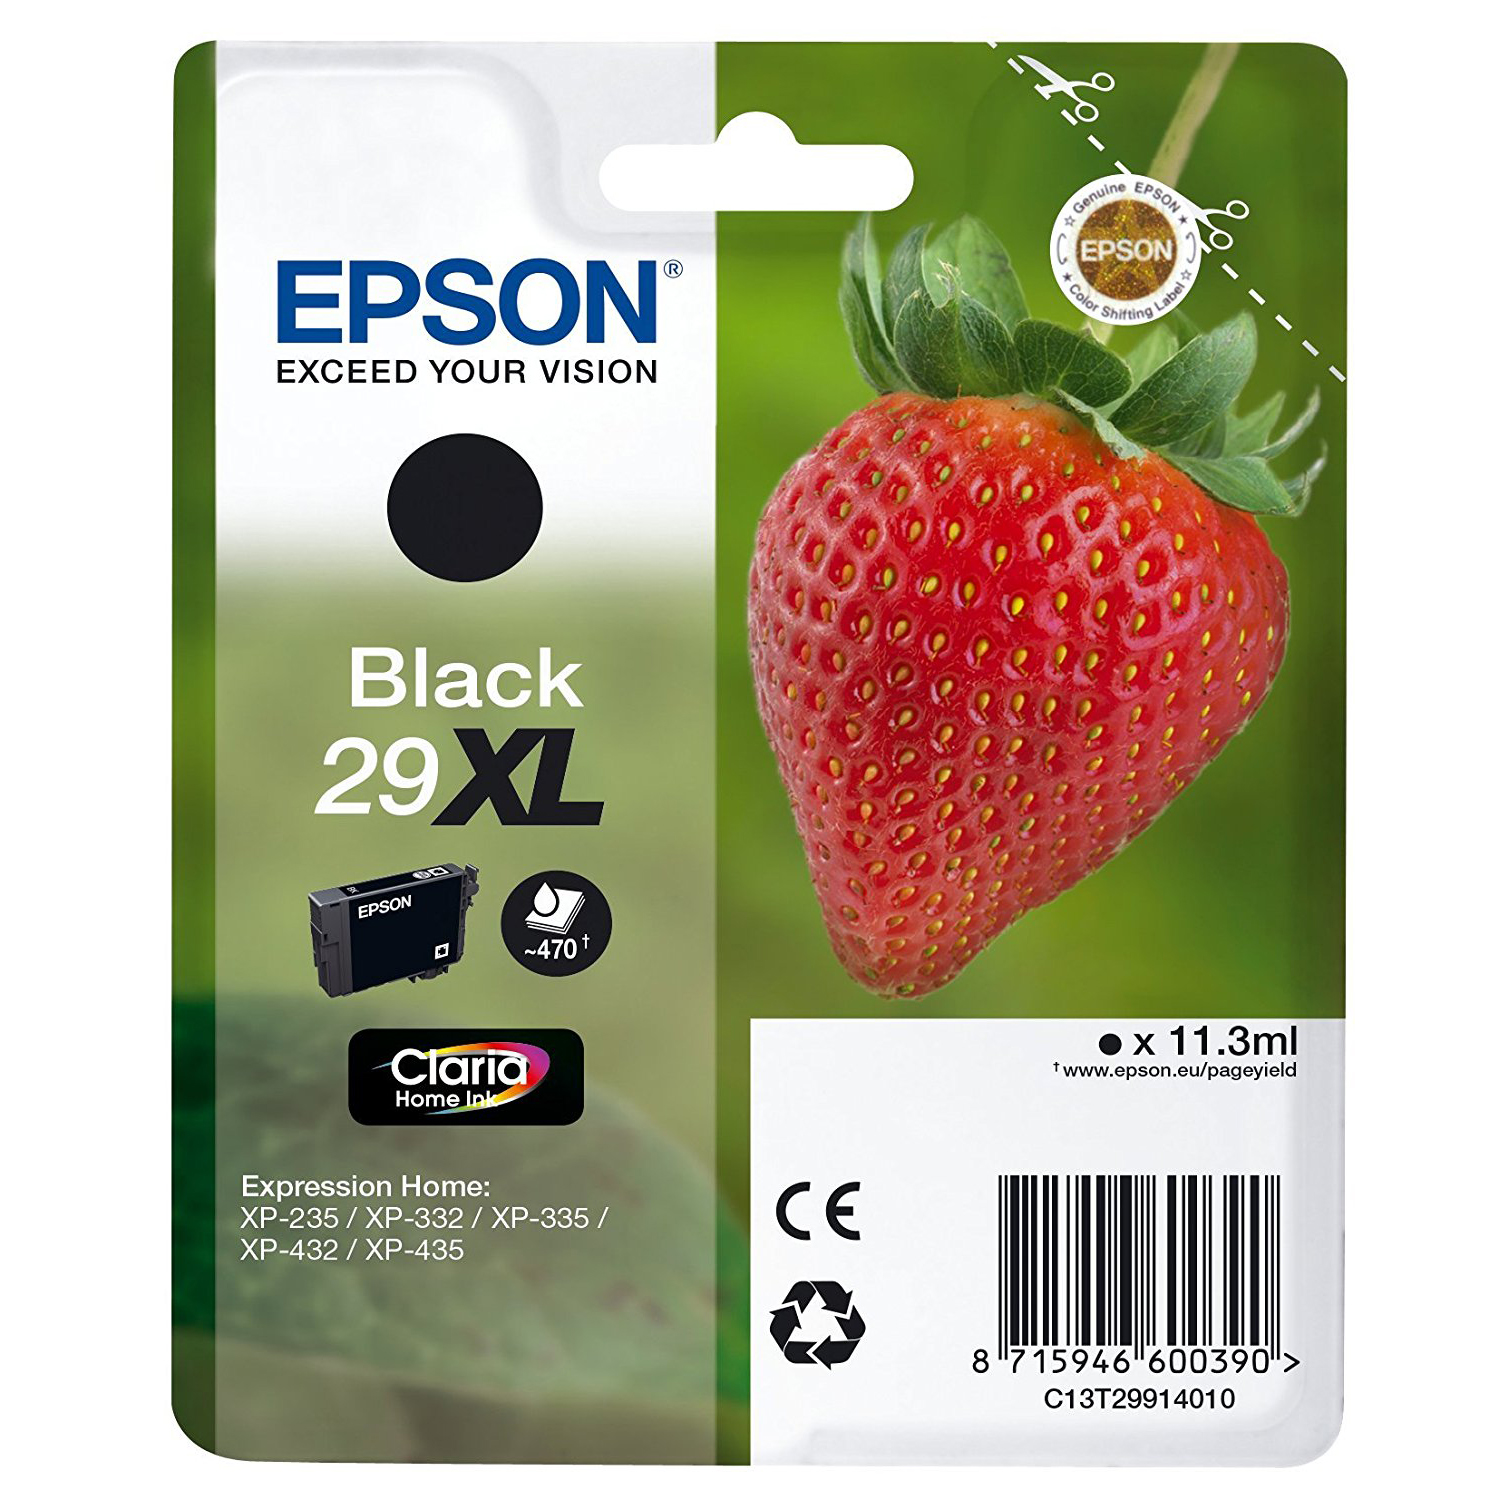 EPSON Strawberry T2991 XL High Capacity Black Ink Cartridge